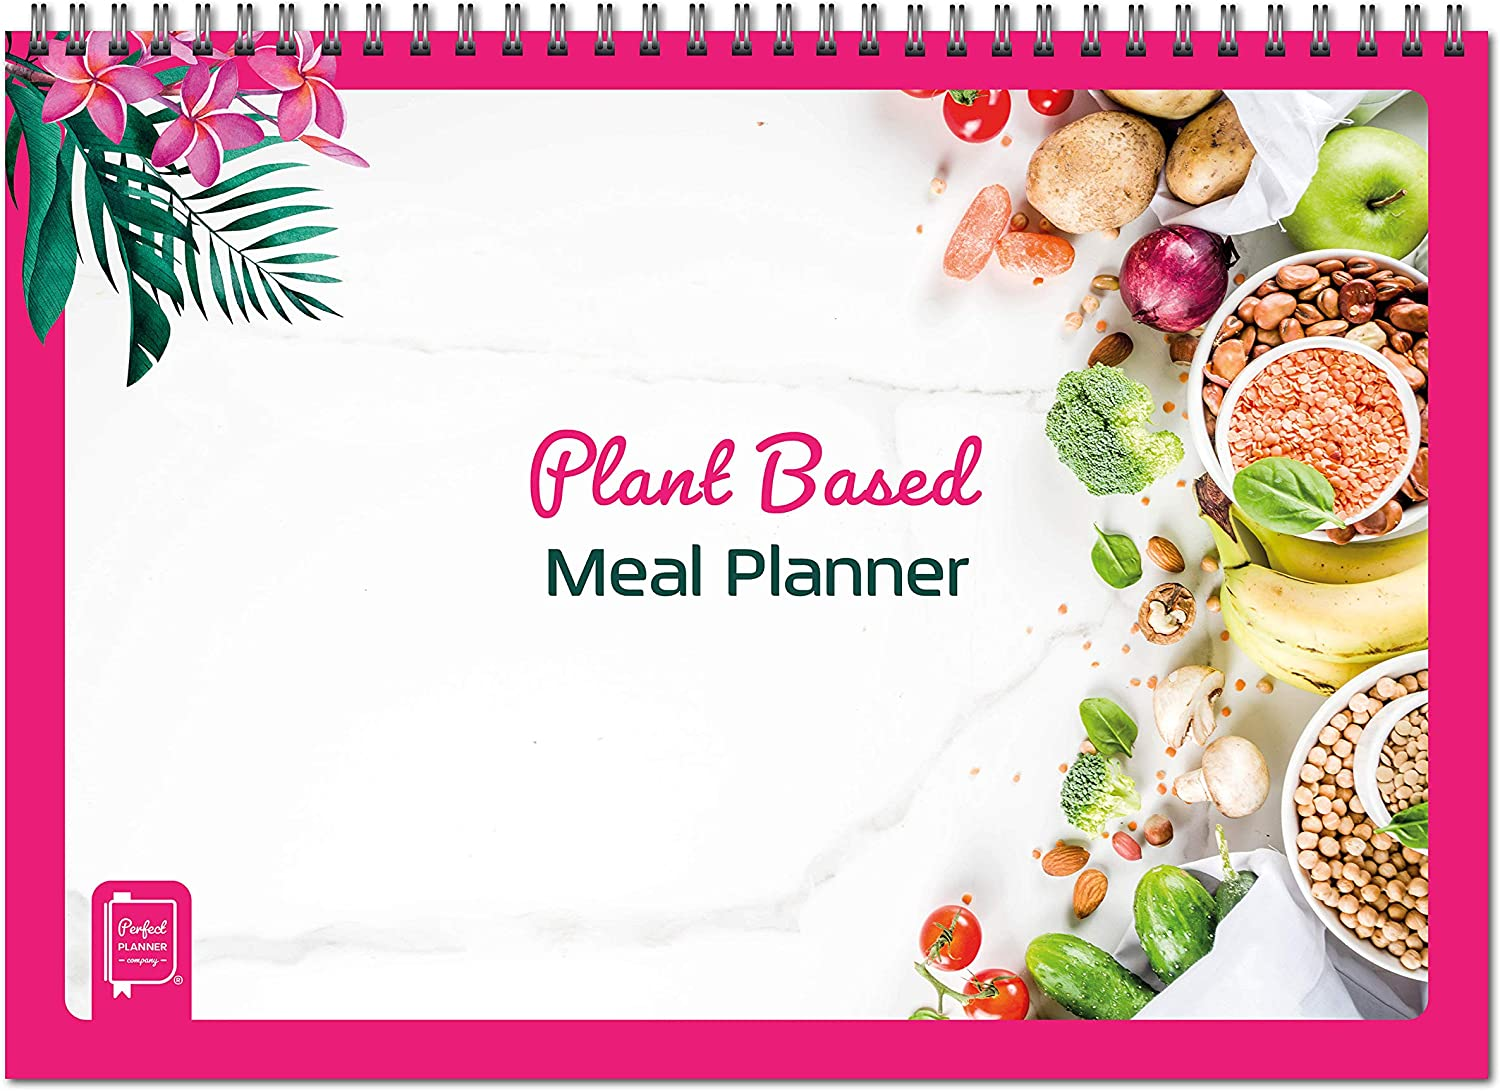 Plant Based Meal Planner. Designed for Plant Based & Vegan Diets. Plan Your Meals for The Week. Monitor Nutritious Food Consumption, Water Intake & Exercise. A4 Wirobound Pad.